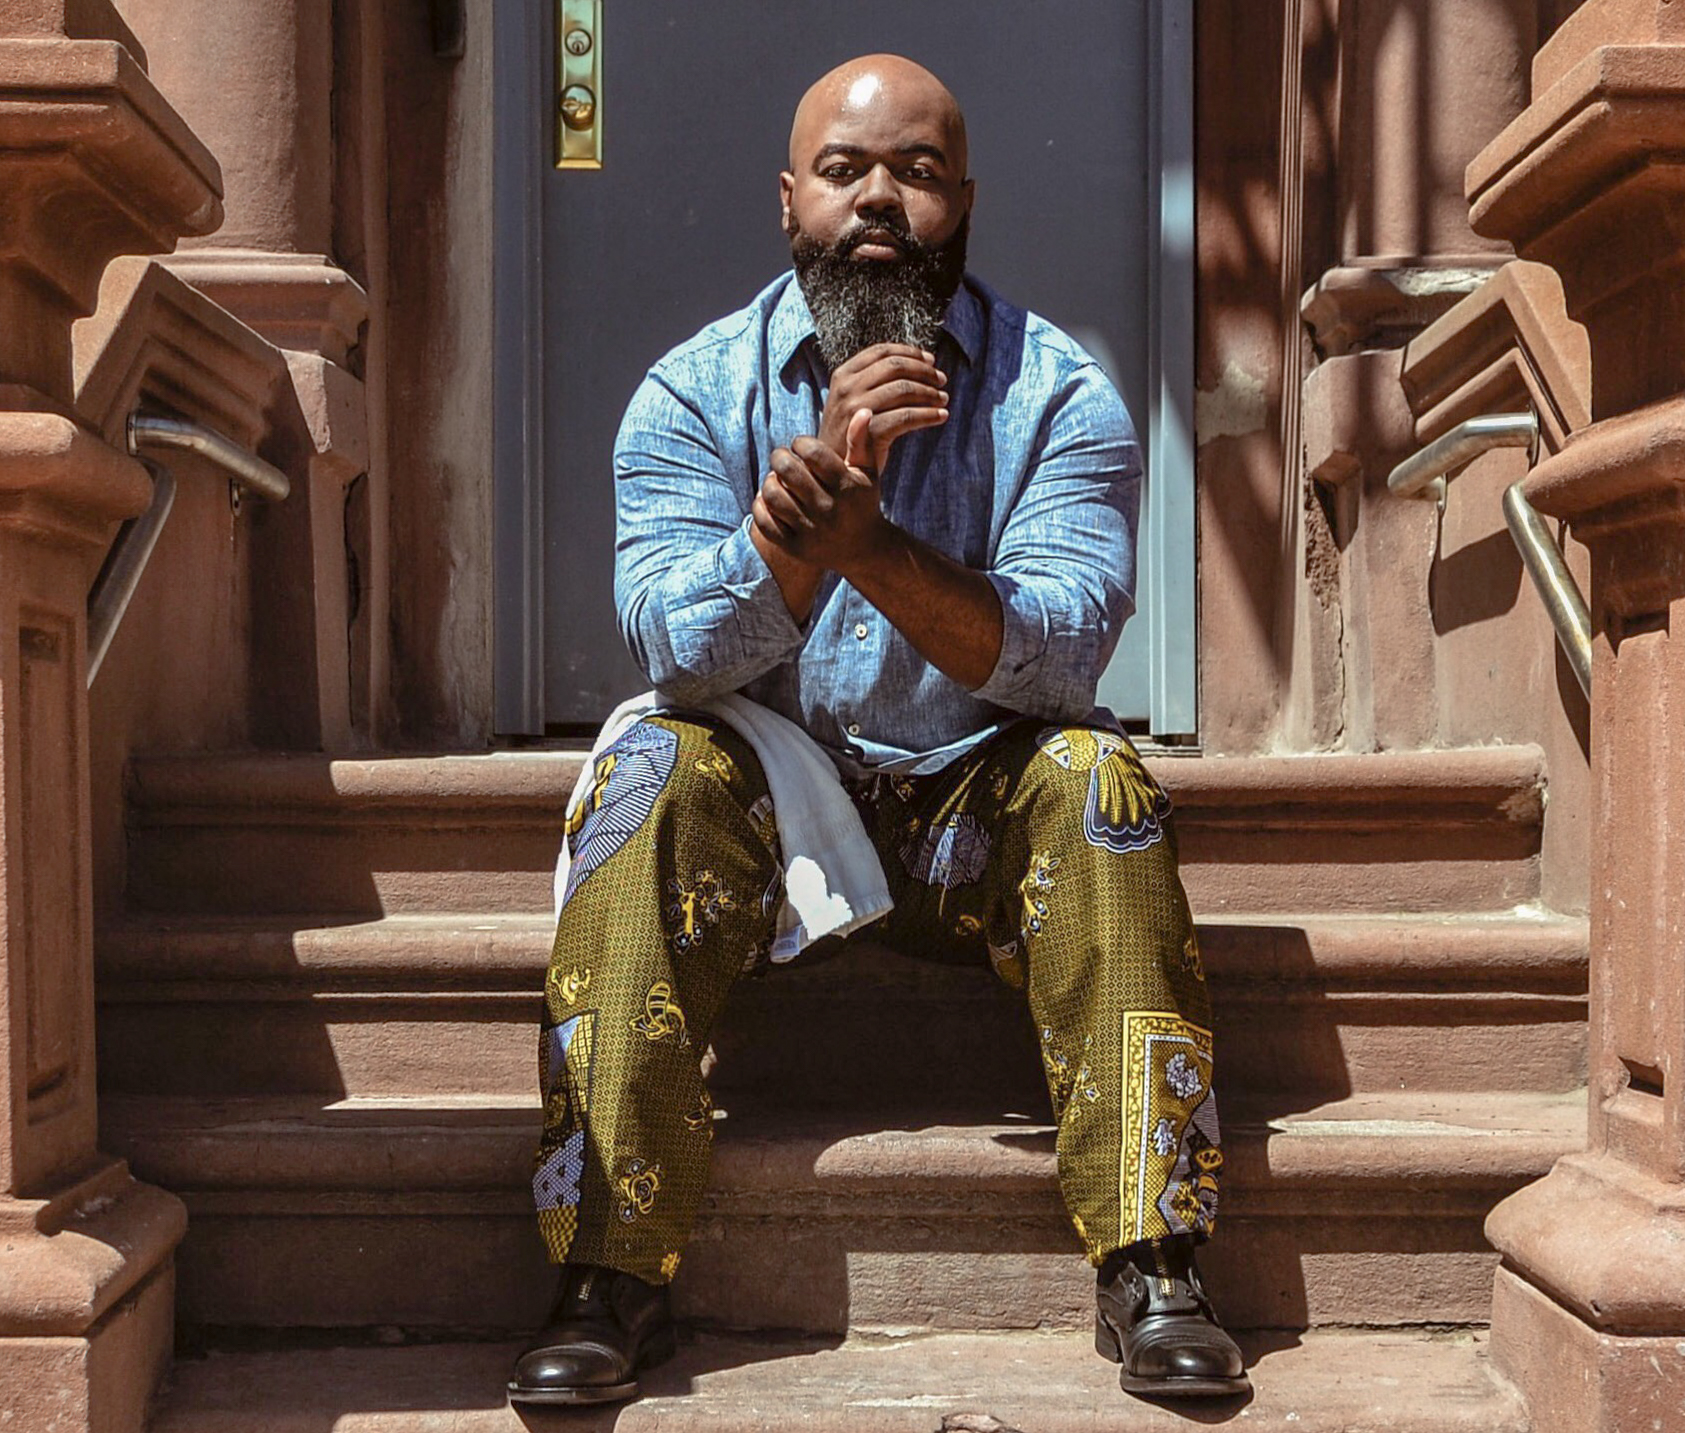 Environmental portrait of Harlem, NYC singer & vocal coach C. Anthony Bryant in front of his home.